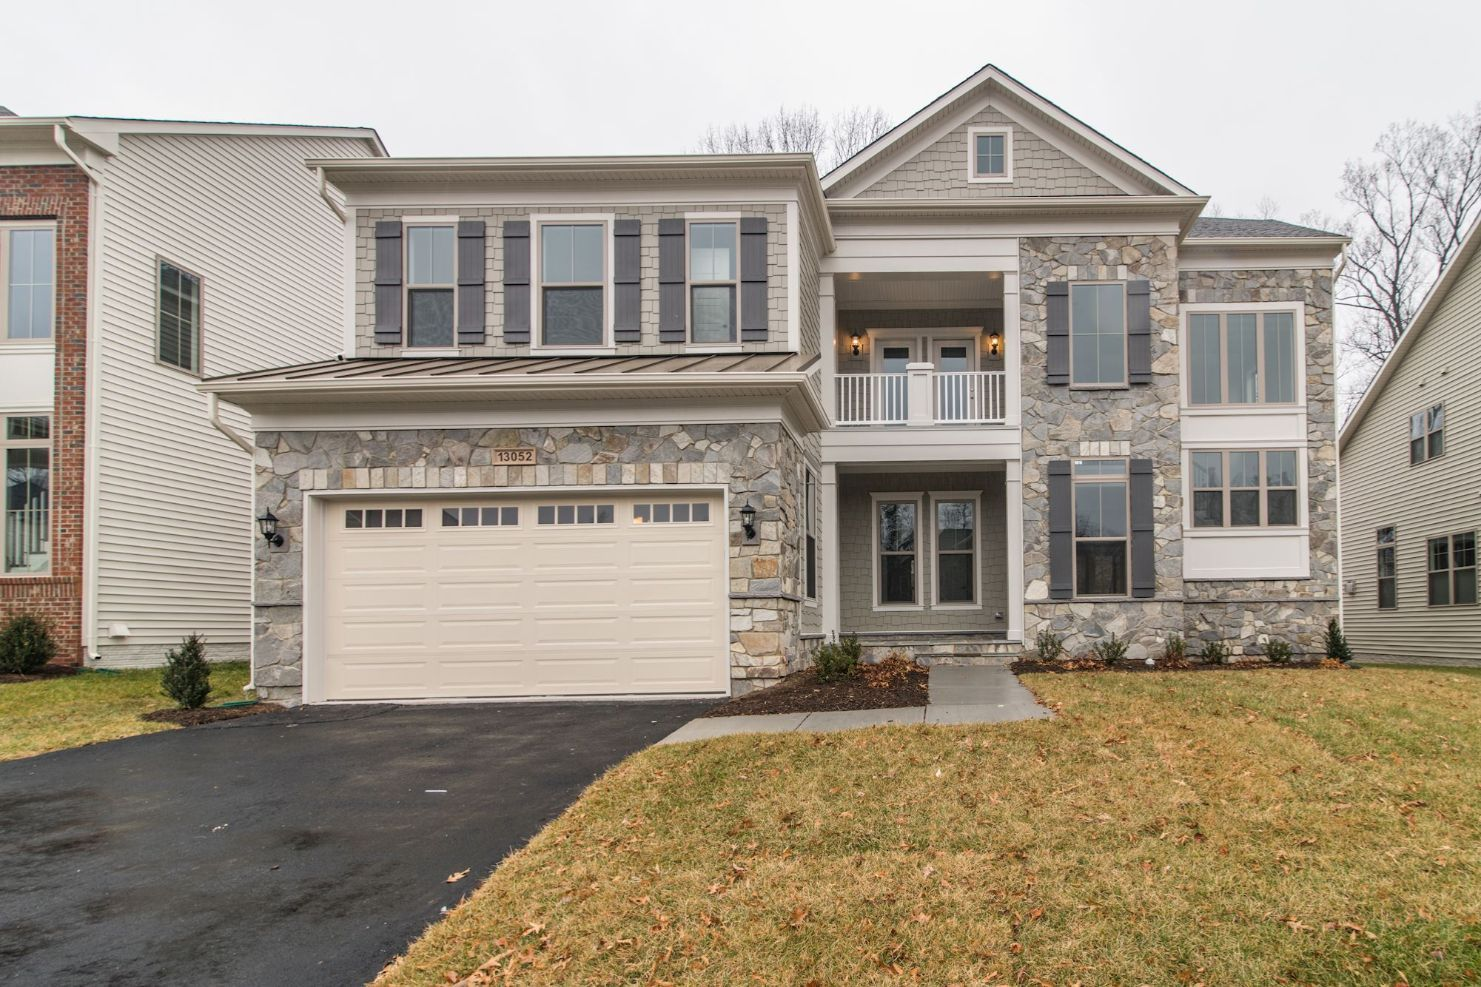 Single Family for Active at West Grove - Alexander 4489 Lateleaf Trail Fairfax, Virginia 22030 United States